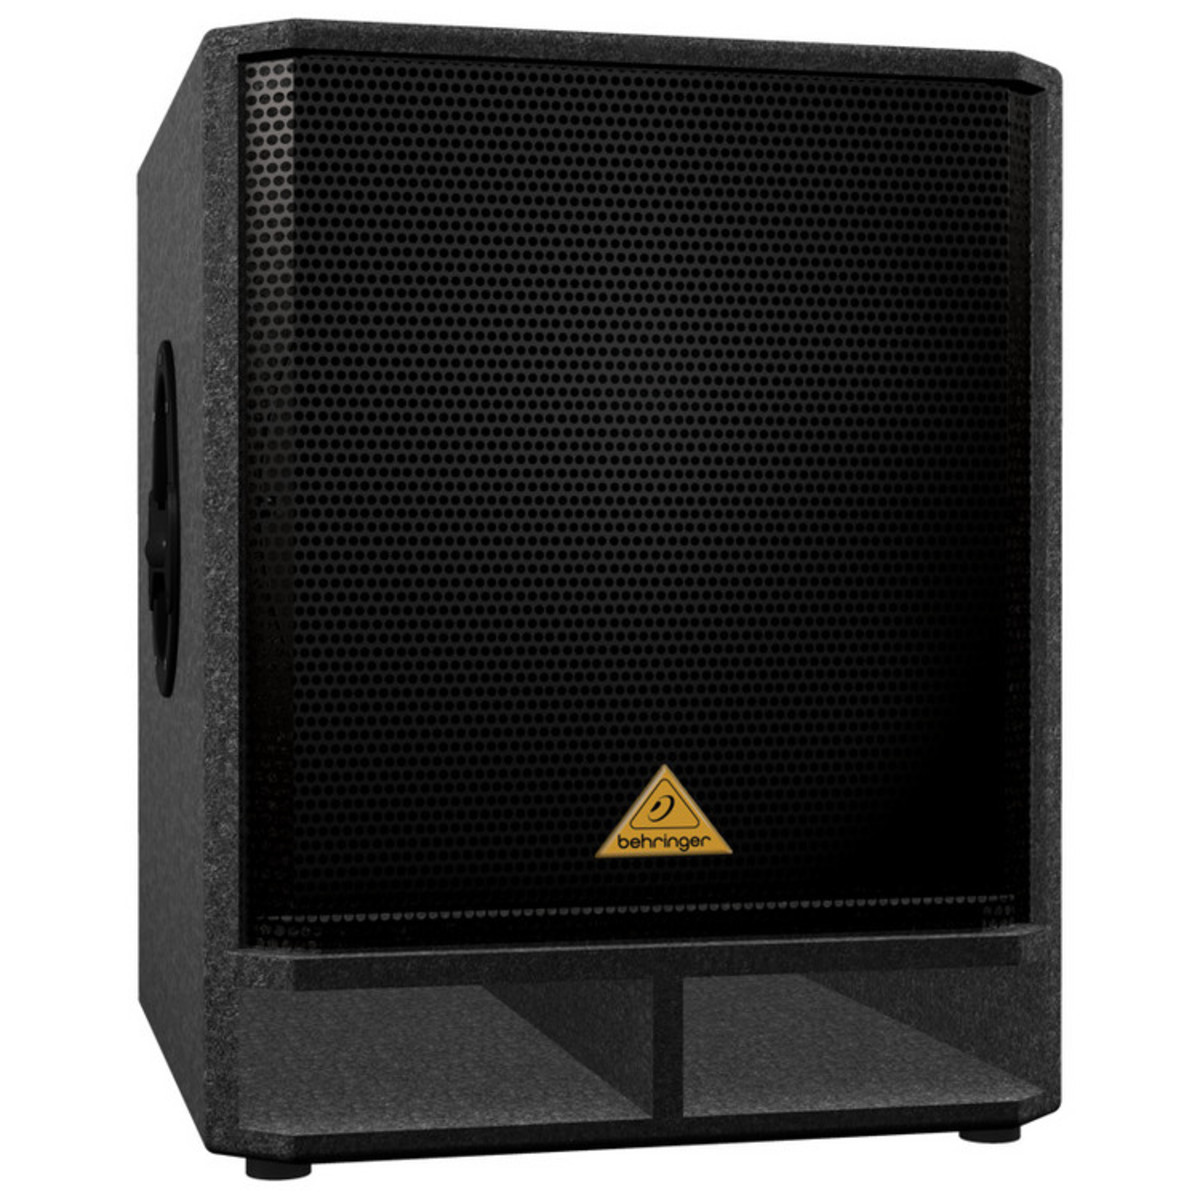 behringer eurolive vp1800s pro 1600w 18 pa subwoofer ex demo at gear4music. Black Bedroom Furniture Sets. Home Design Ideas